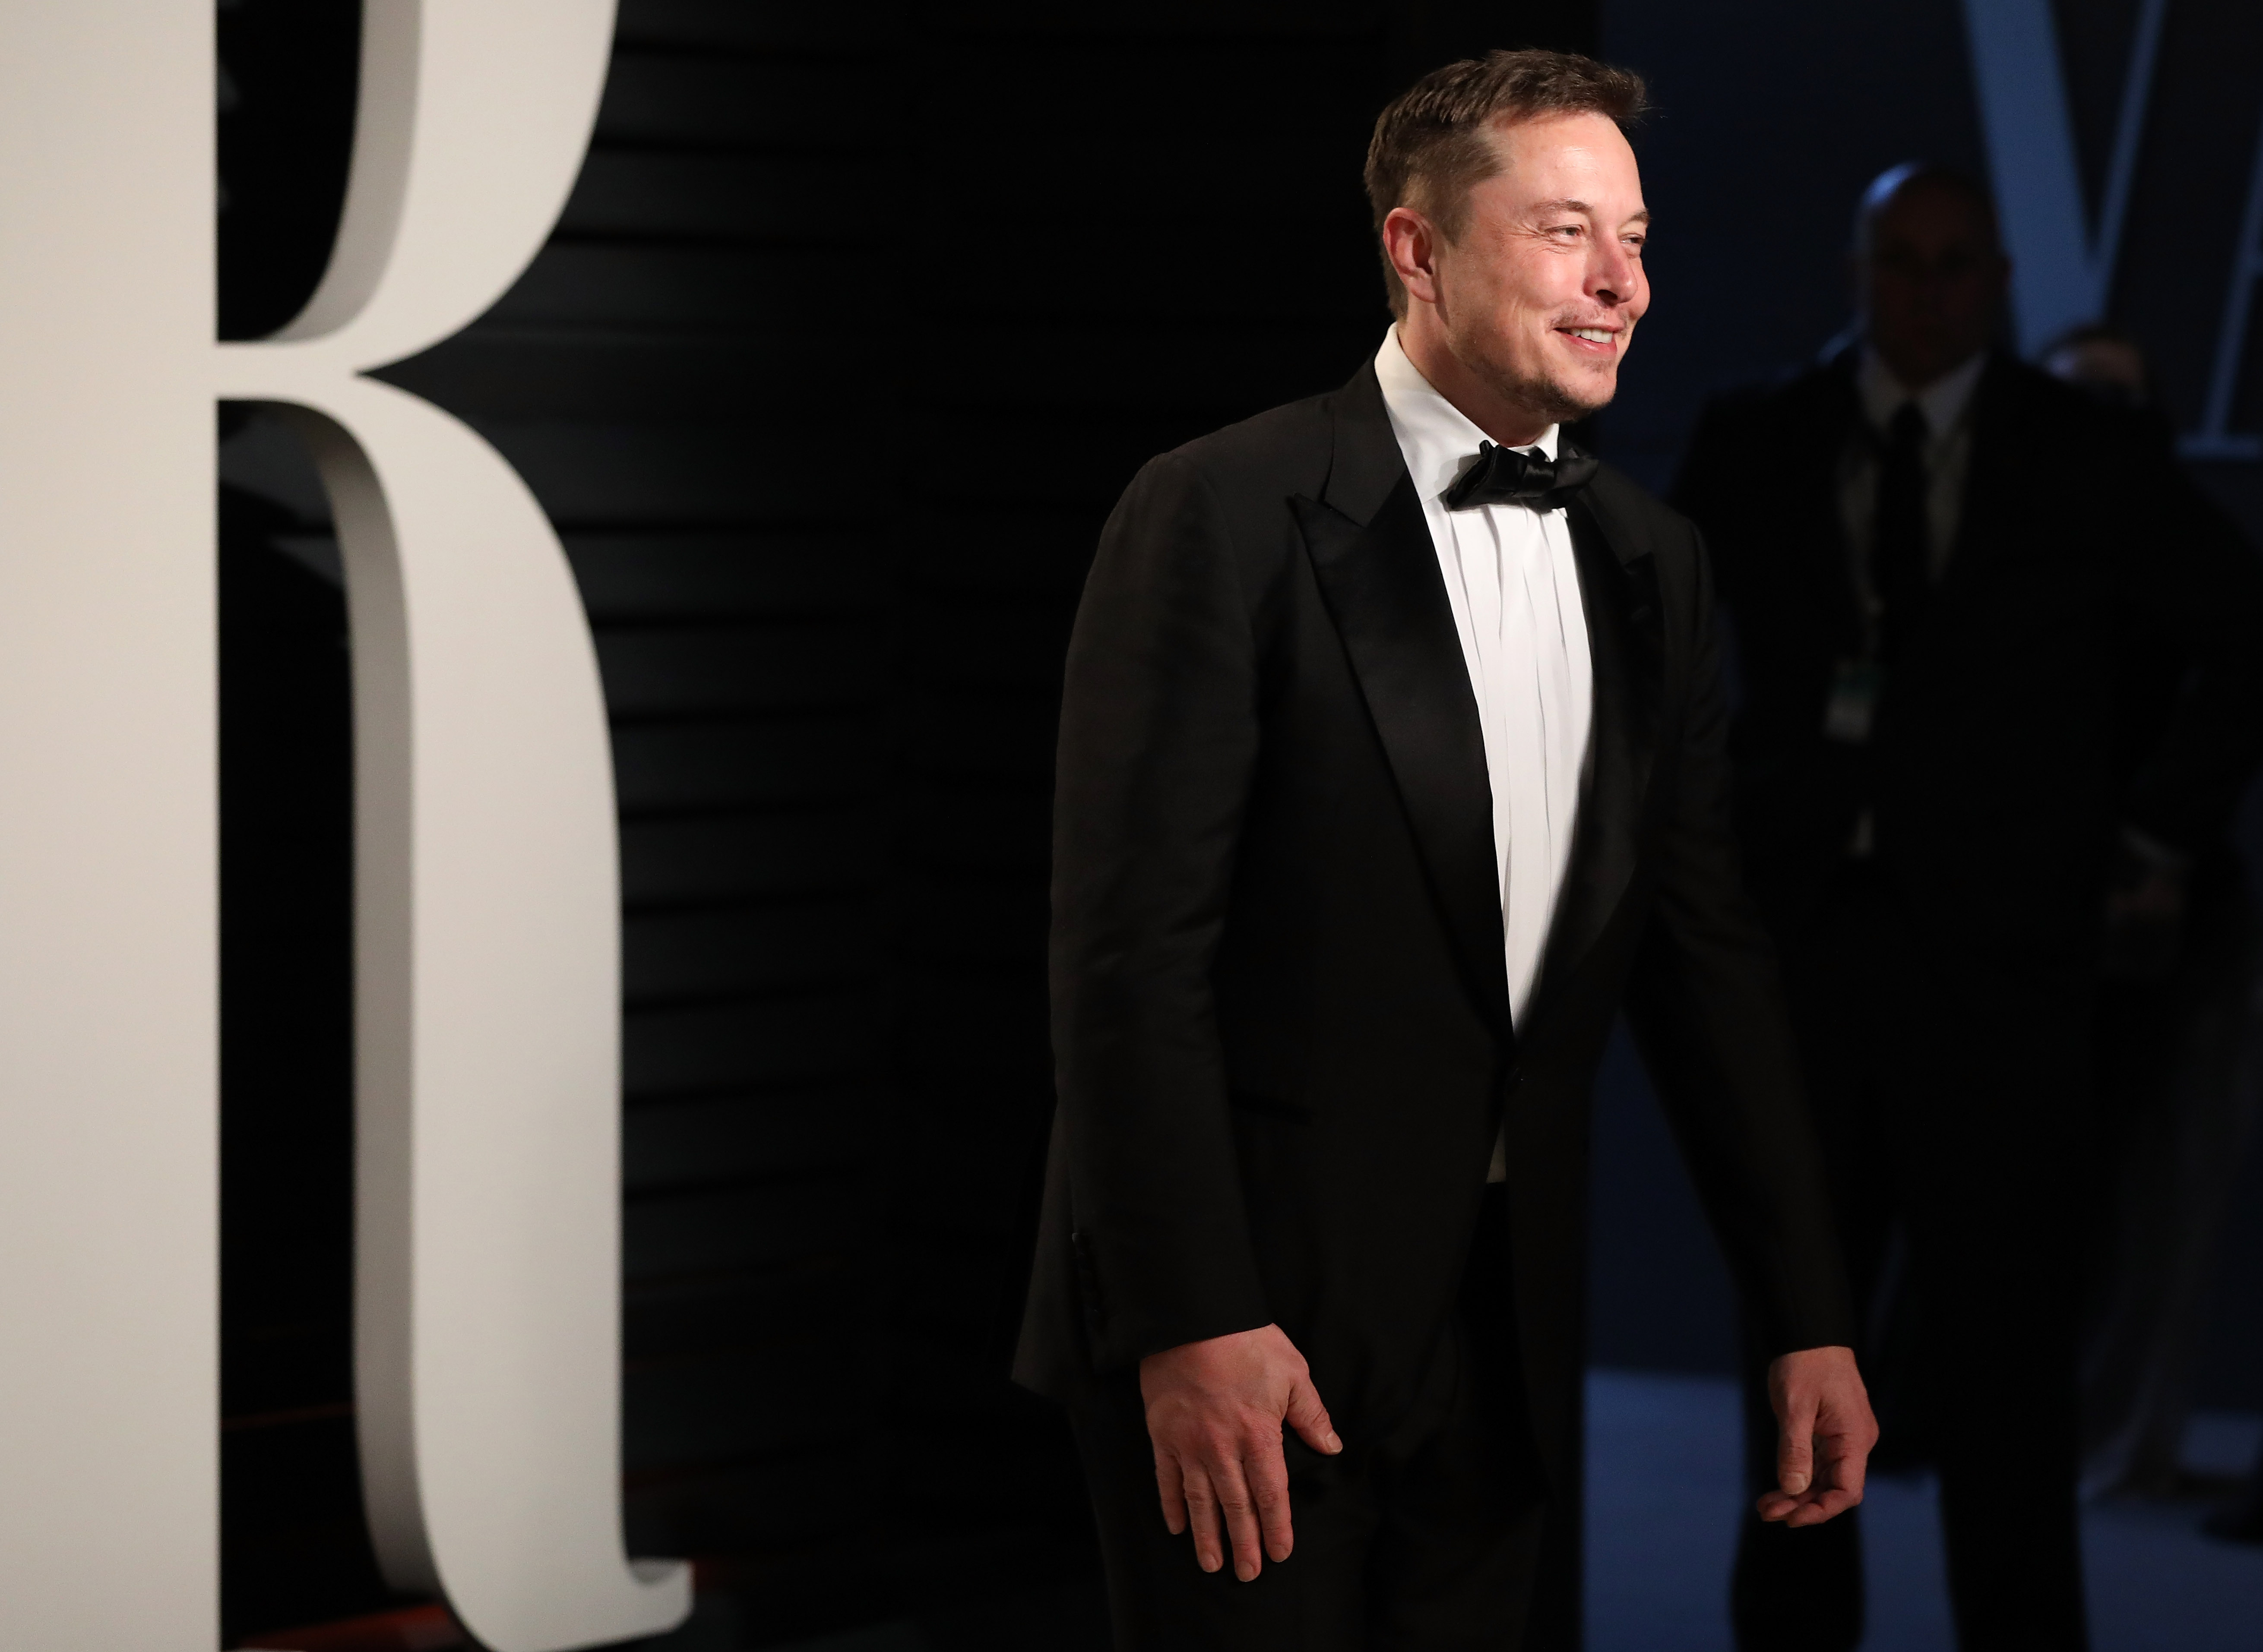 SpaceX CEO Elon Musk attends 2017 Vanity Fair Oscar Party Hosted By Graydon Carter  at Wallis Annenberg Center for the Performing Arts on February 26, 2017 in Beverly Hills, California.